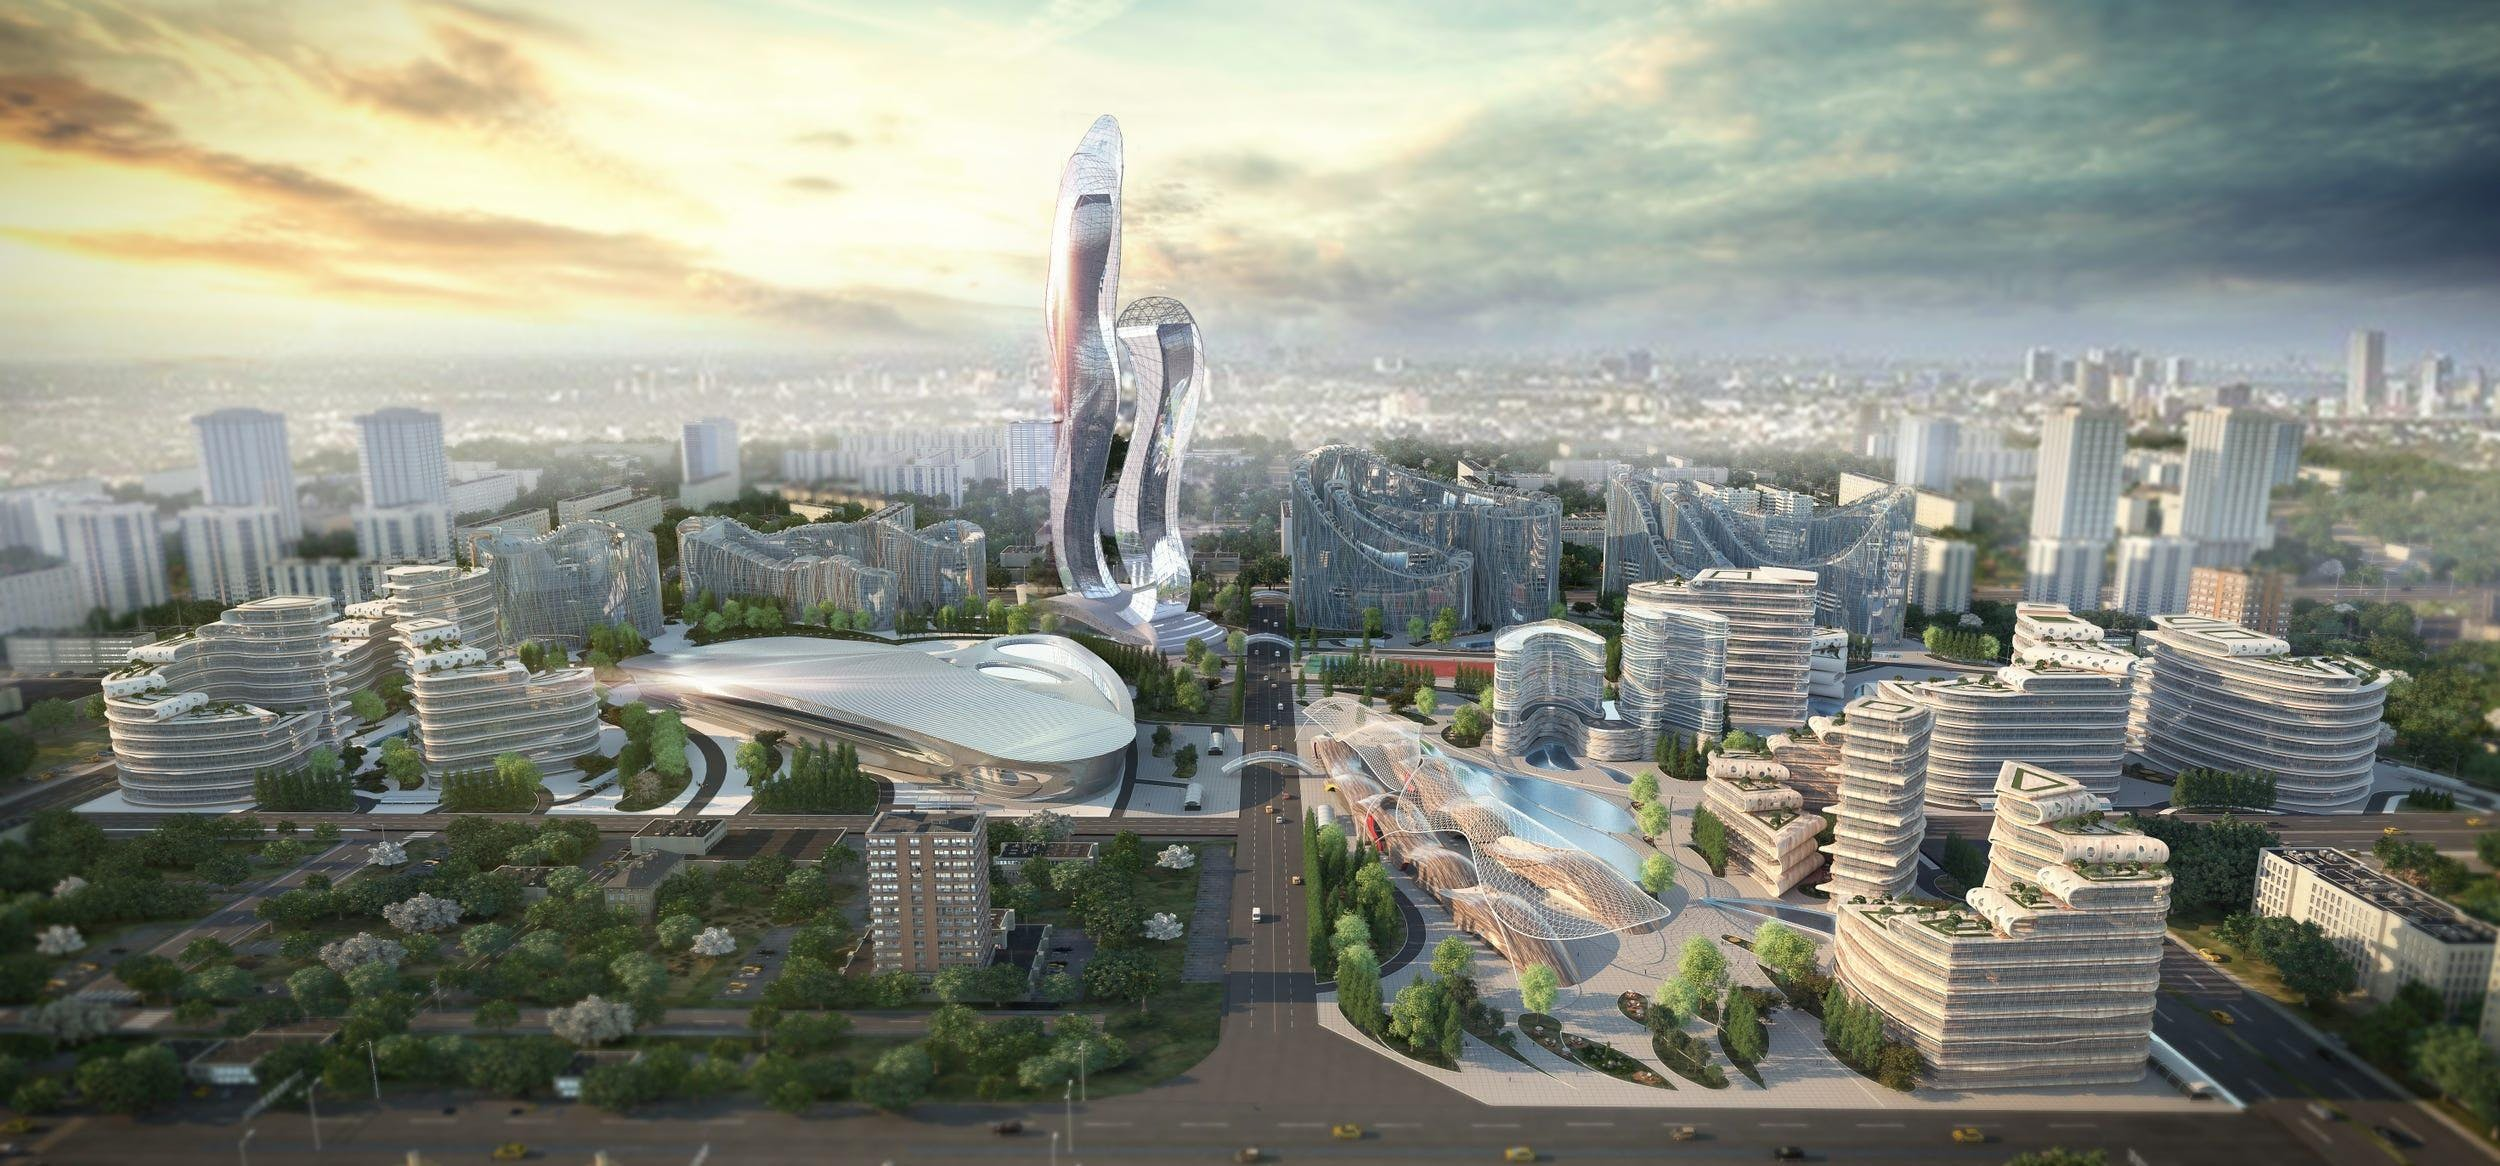 Pop star Akon set to break ground on Senegal's first LEED-certified crypto- city | News | Archinect